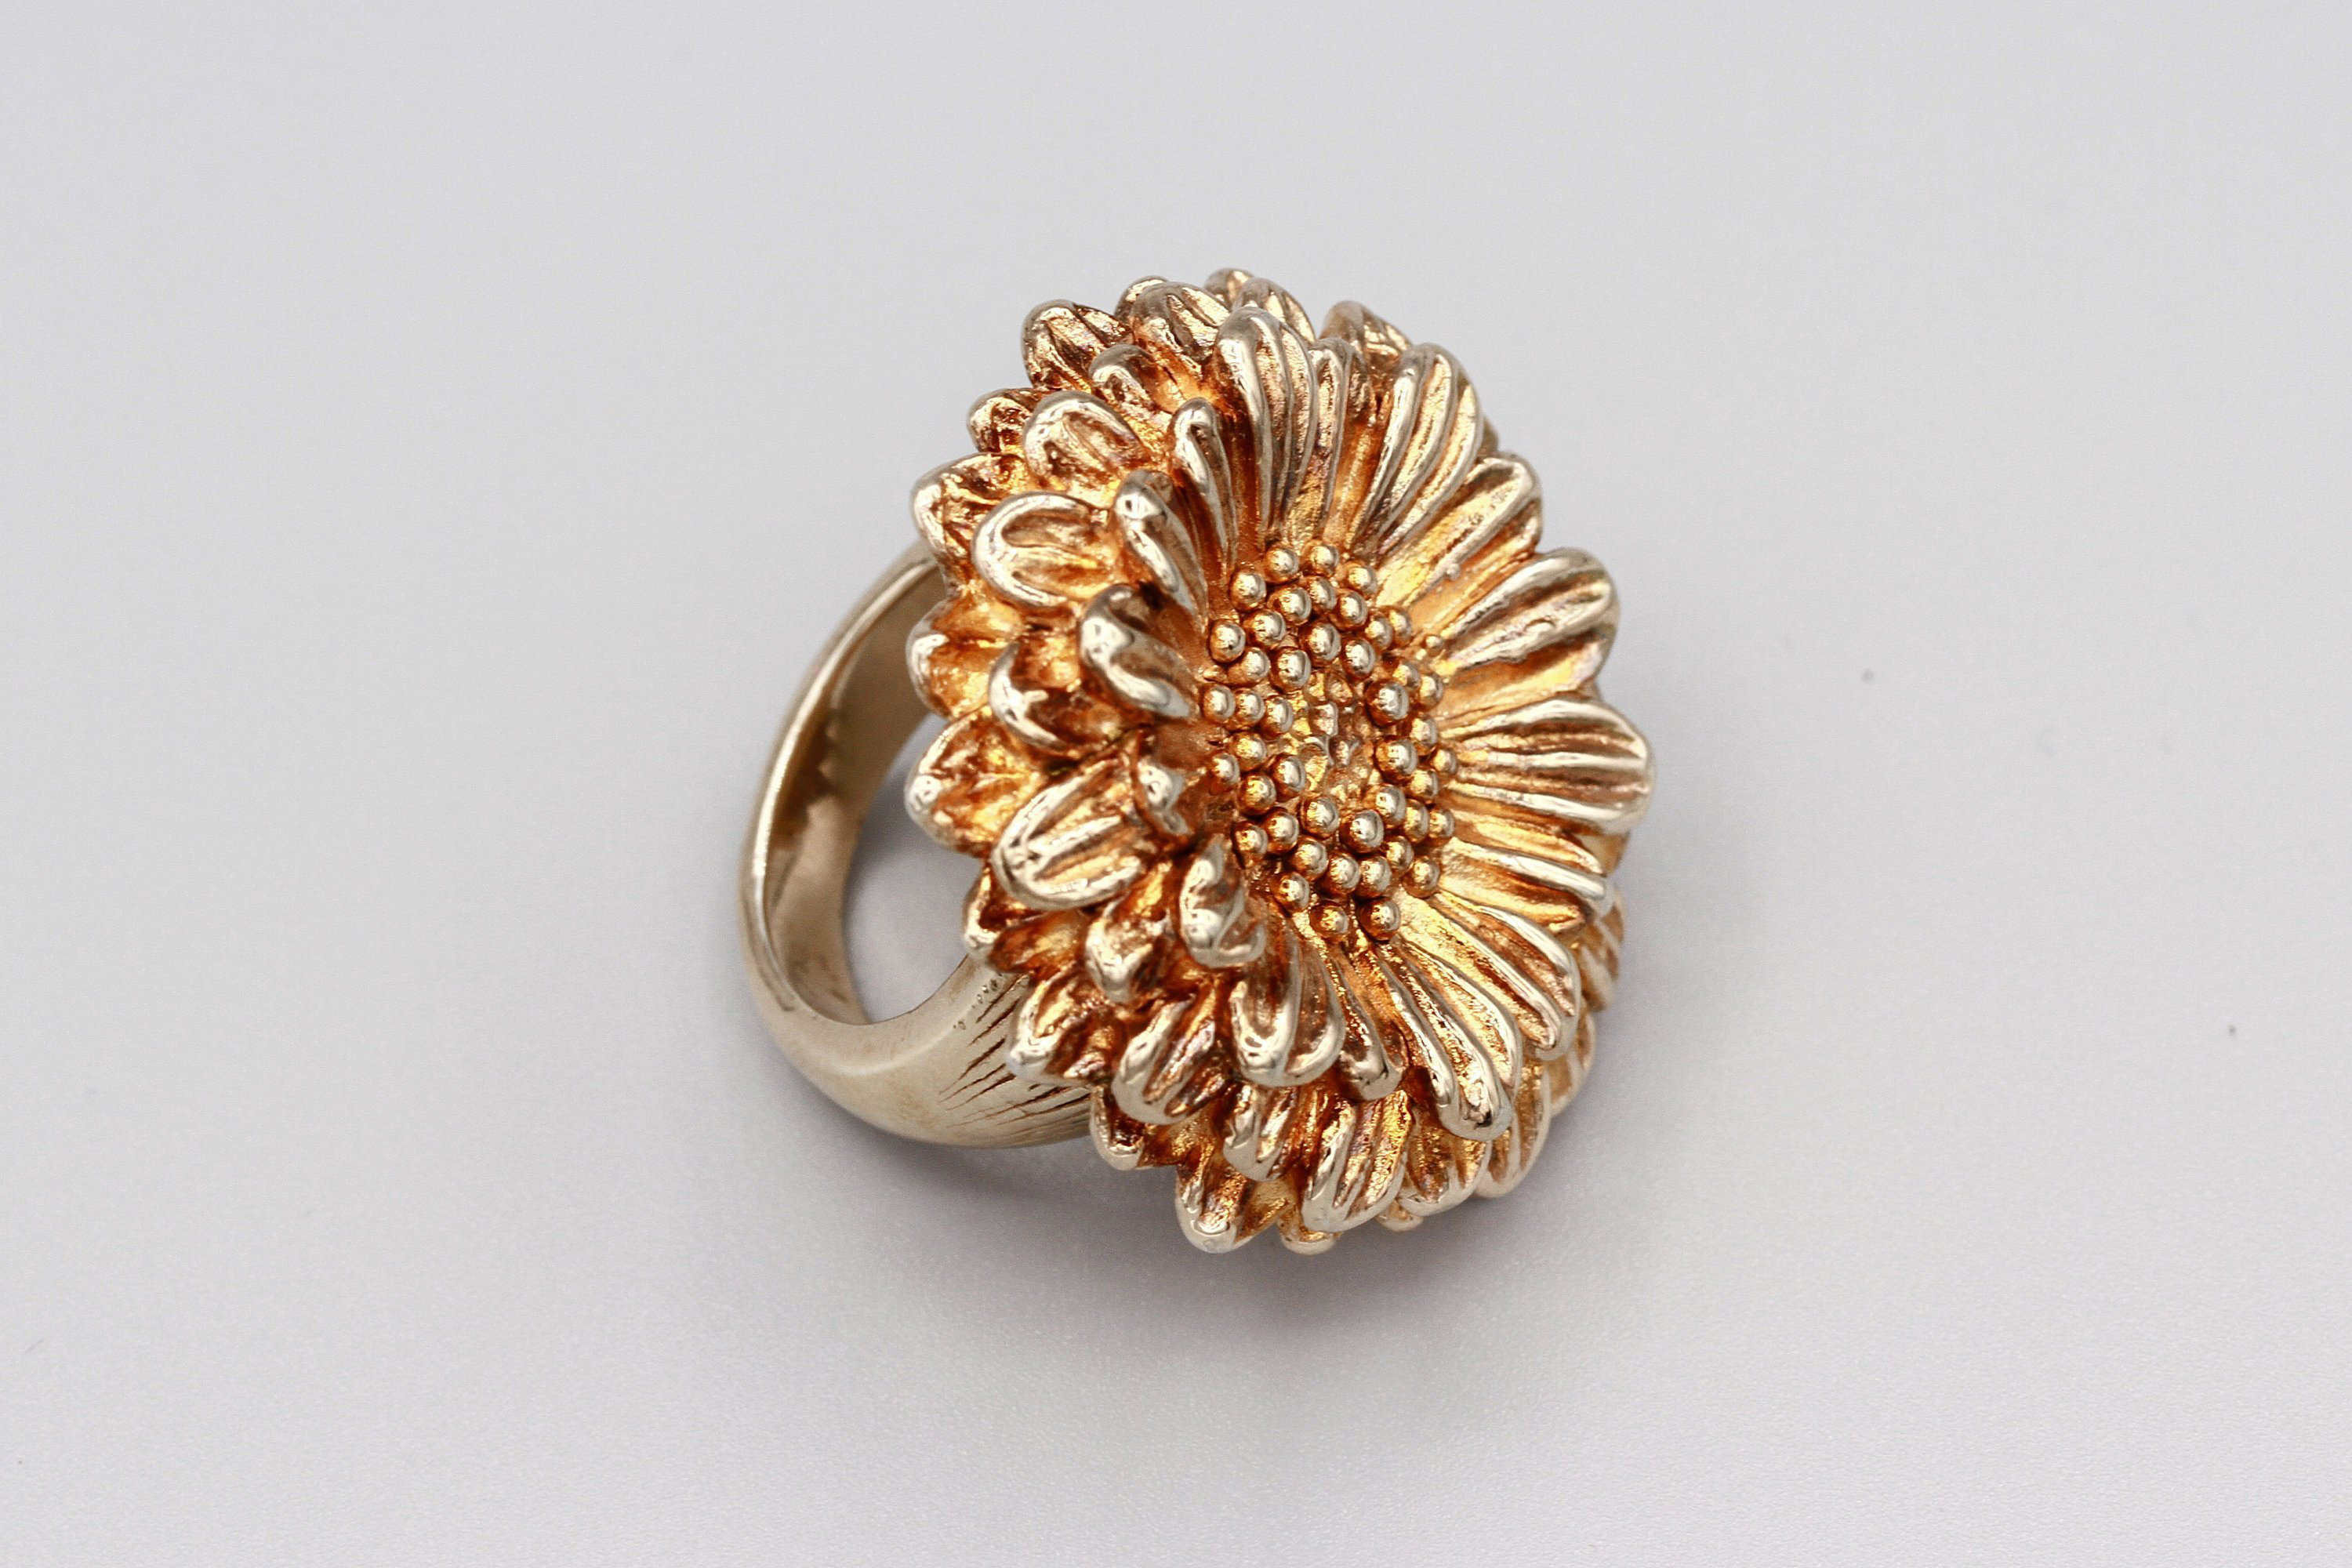 Large Daisy Flower Ring Size 7, Big Sterling Silver Gold Finish Statement Ring In Current Daisy Flower Rings (View 17 of 25)